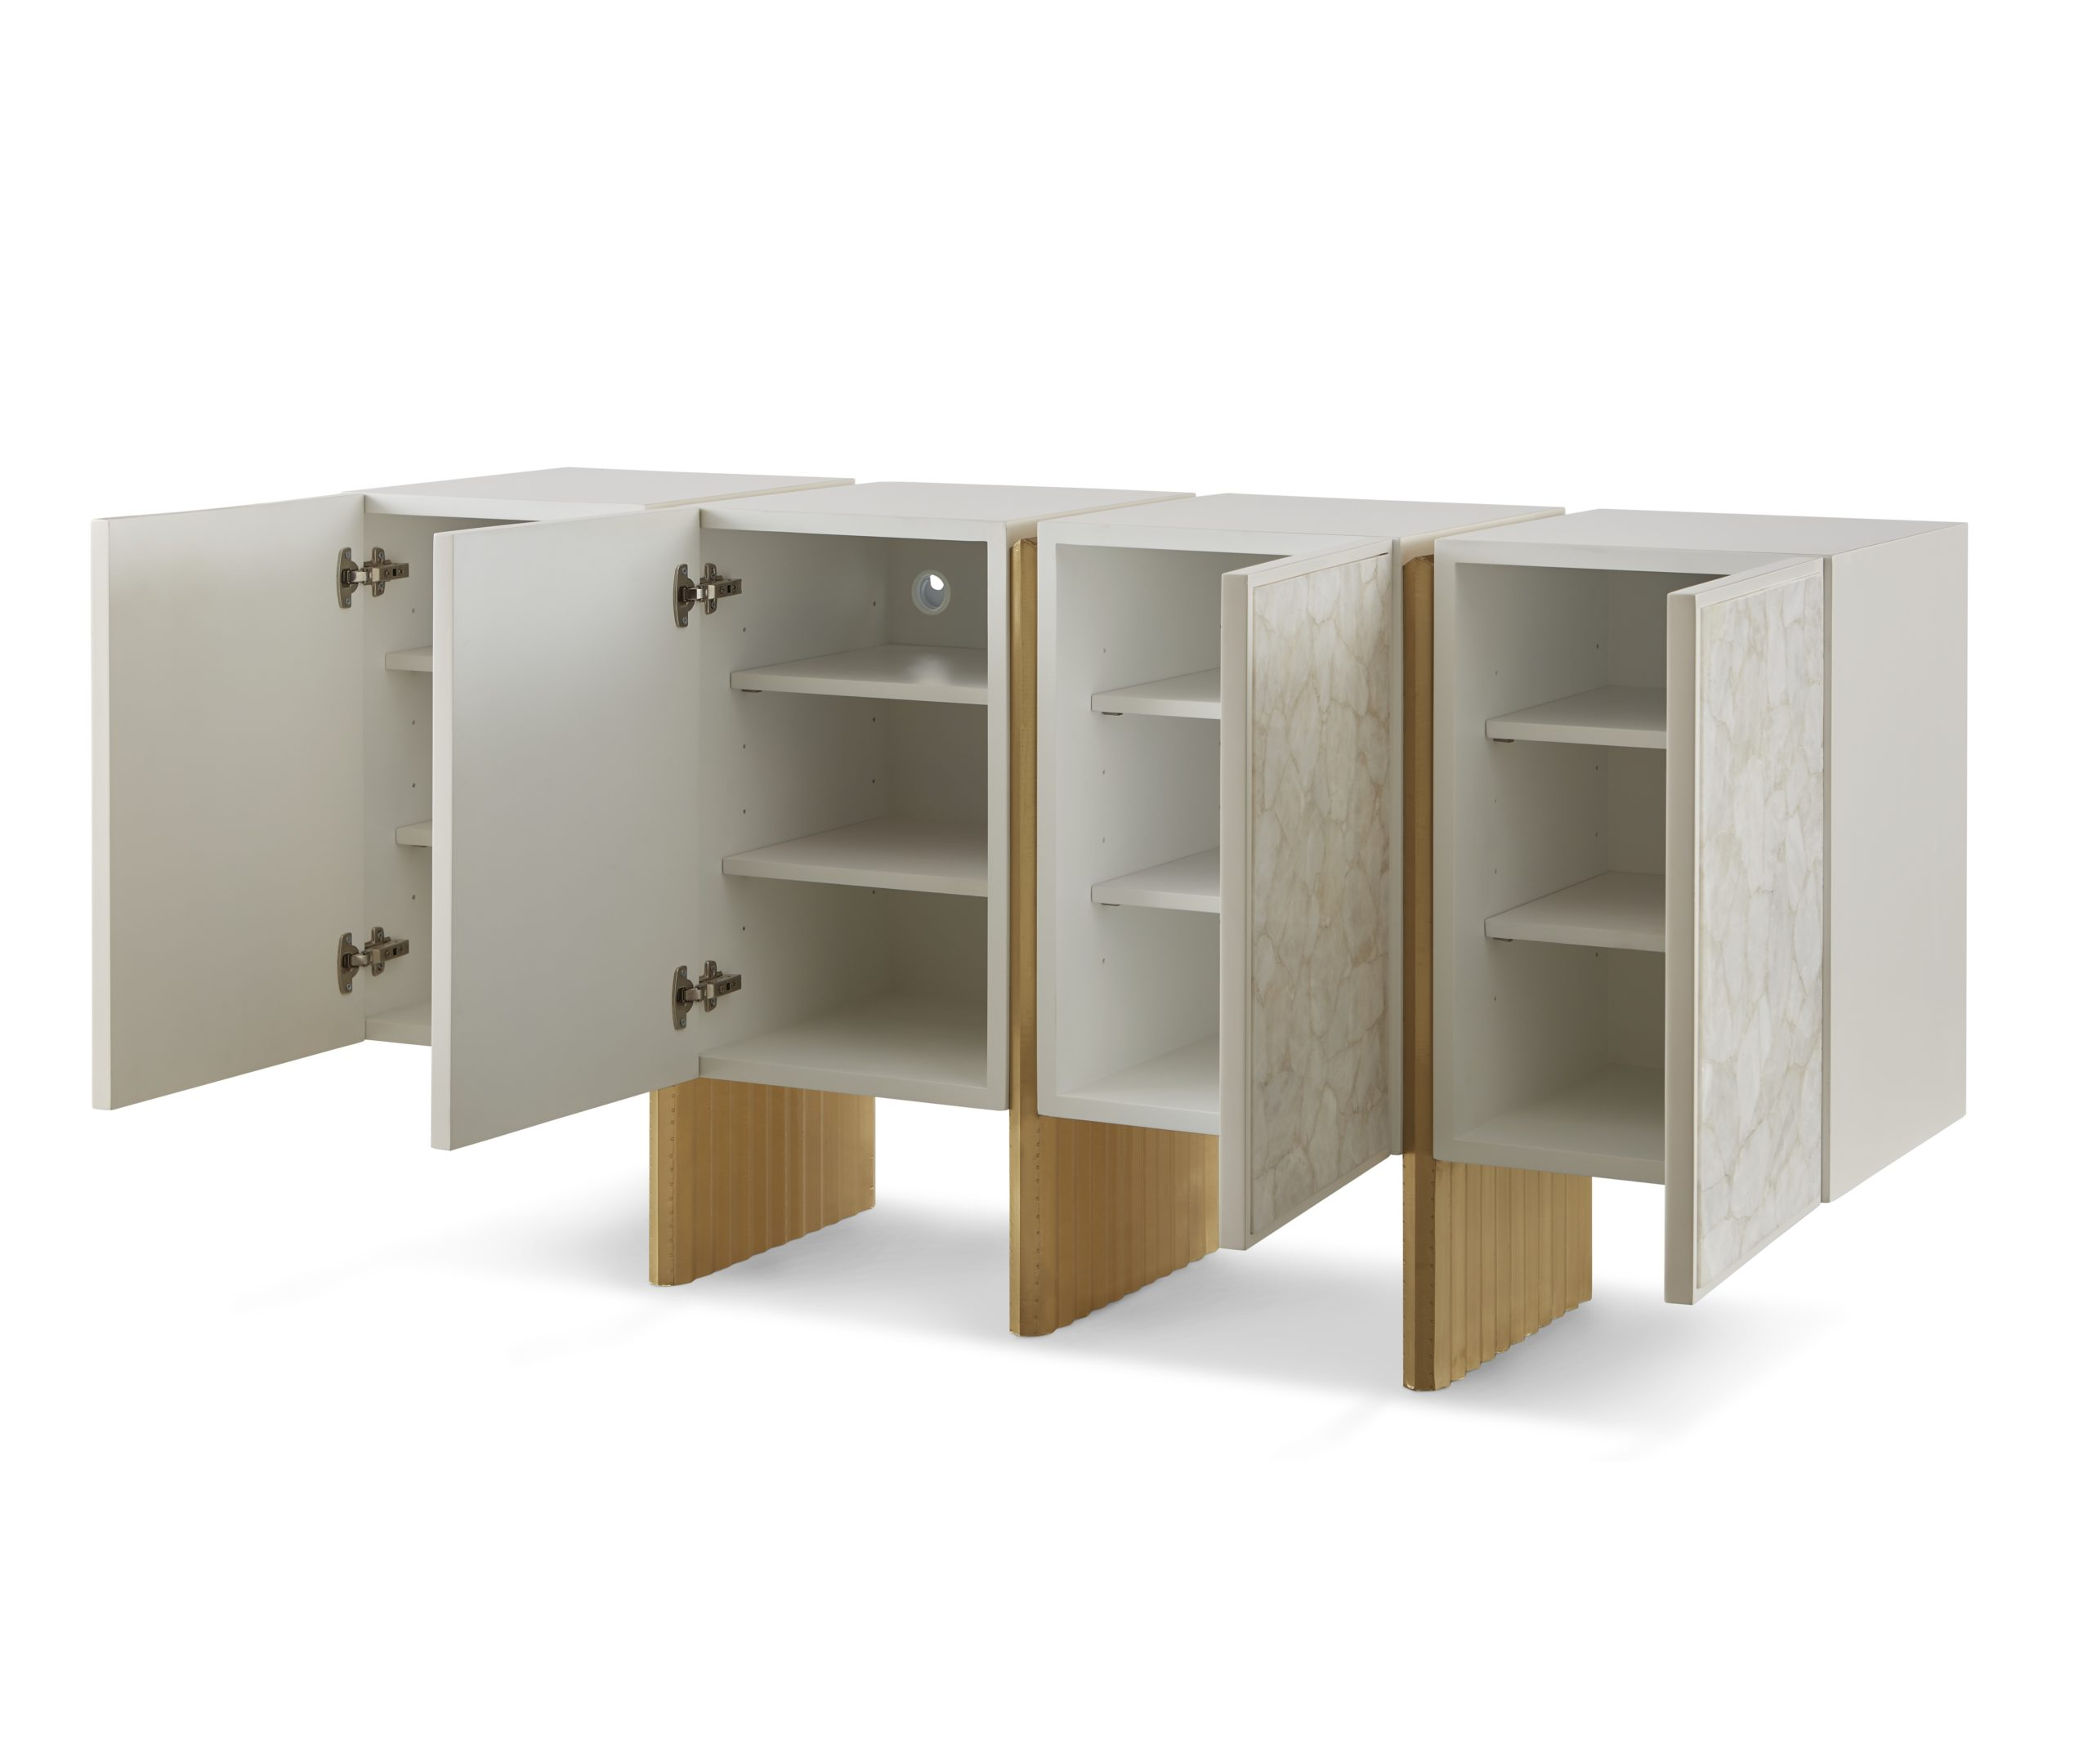 Baker_products_WNWN_kira_credenza_BAA3028_OPEN-scaled-1